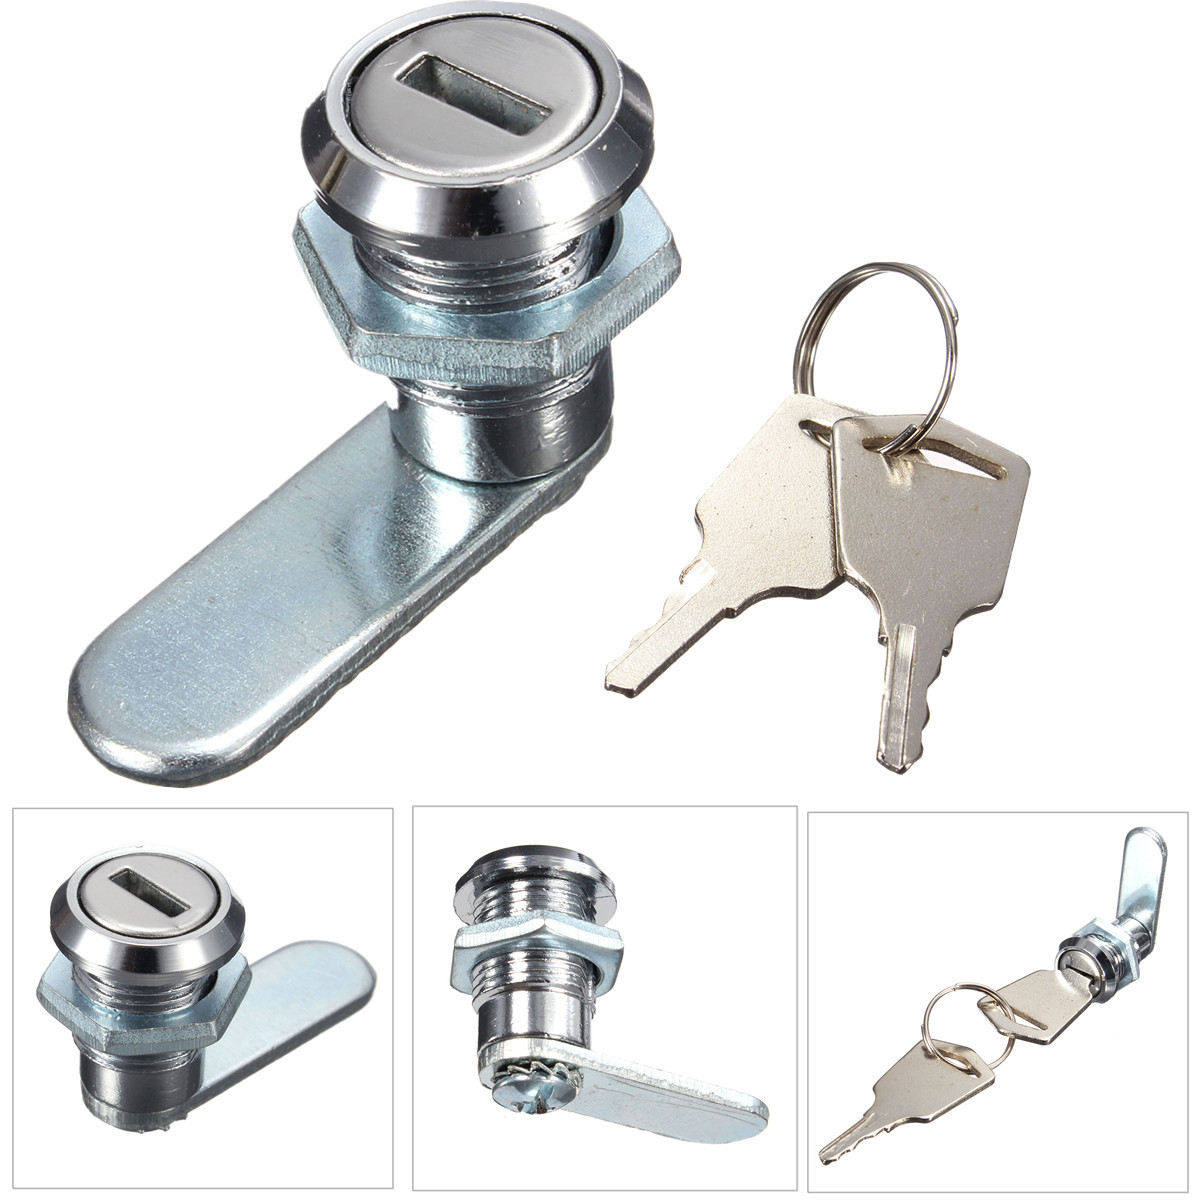 Cam Lock Desk Drawer Lock with 2 Keys for Arcade Cupboard Mail Box File Cabinet